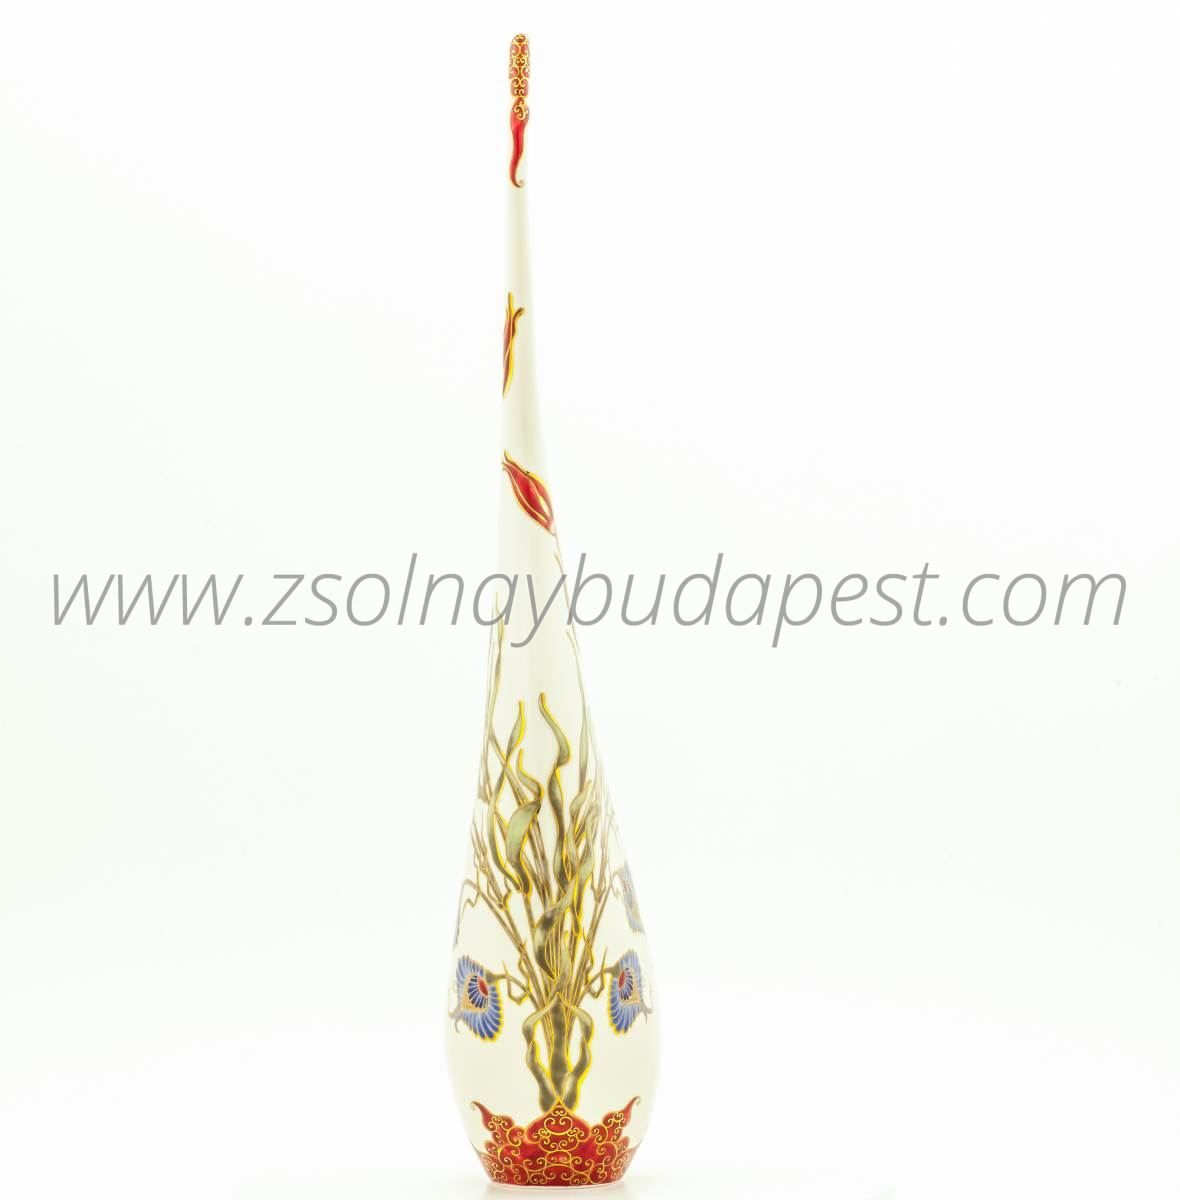 One of a kind Hungarian Rhapsody vase